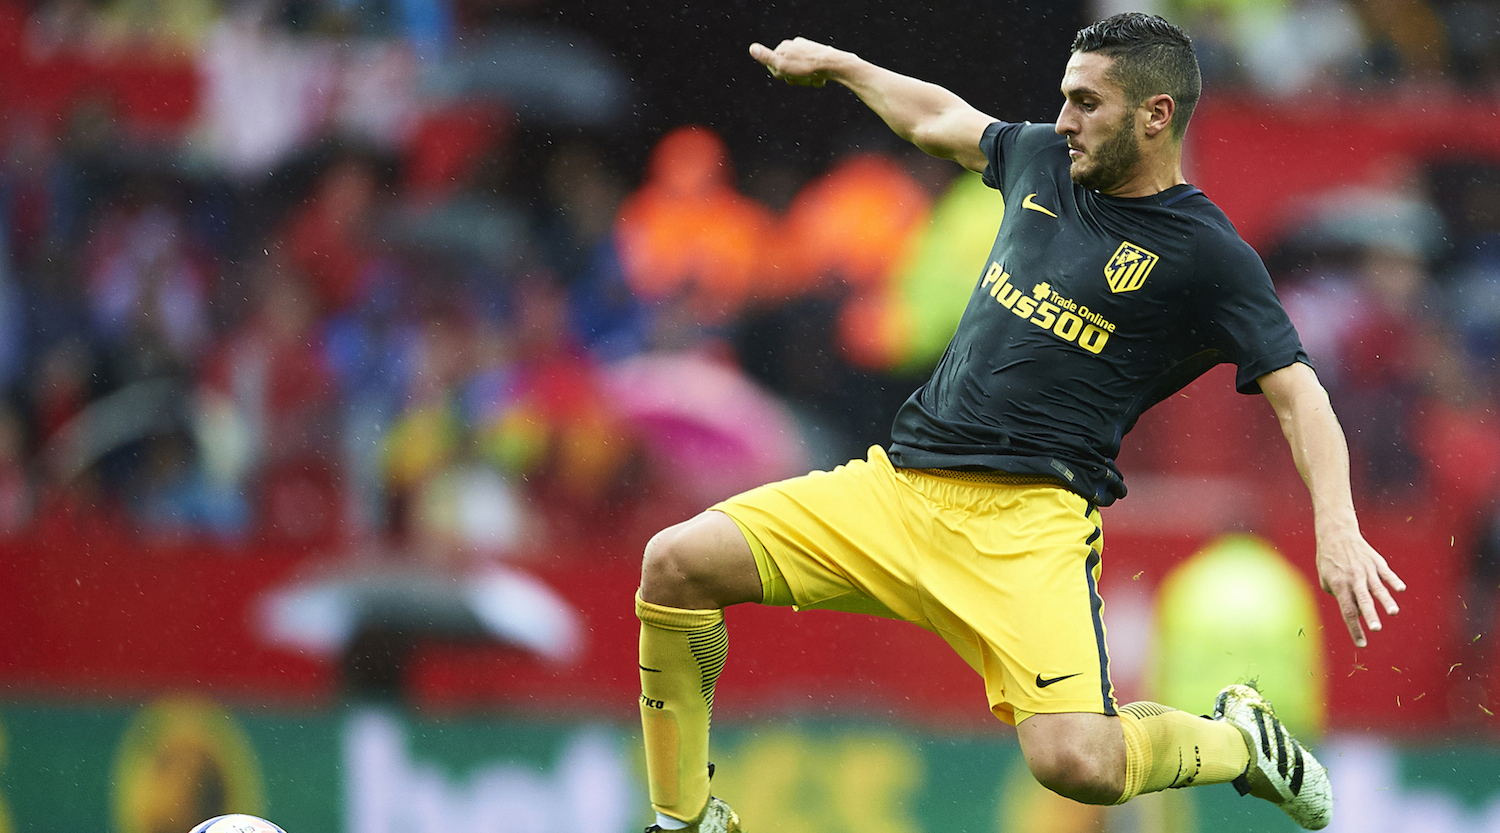 SEVILLE, SPAIN - OCTOBER 23: Koke Resurreccion of Club Atletico de Madrid in action on during the match between Sevilla FC vs Club Atletico de Madrid as part of La Liga at Estadio Ramon Sanchez Pizjuanon October 23, 2016 in Seville, Spain. (Photo by Aitor Alcalde/Getty Images)